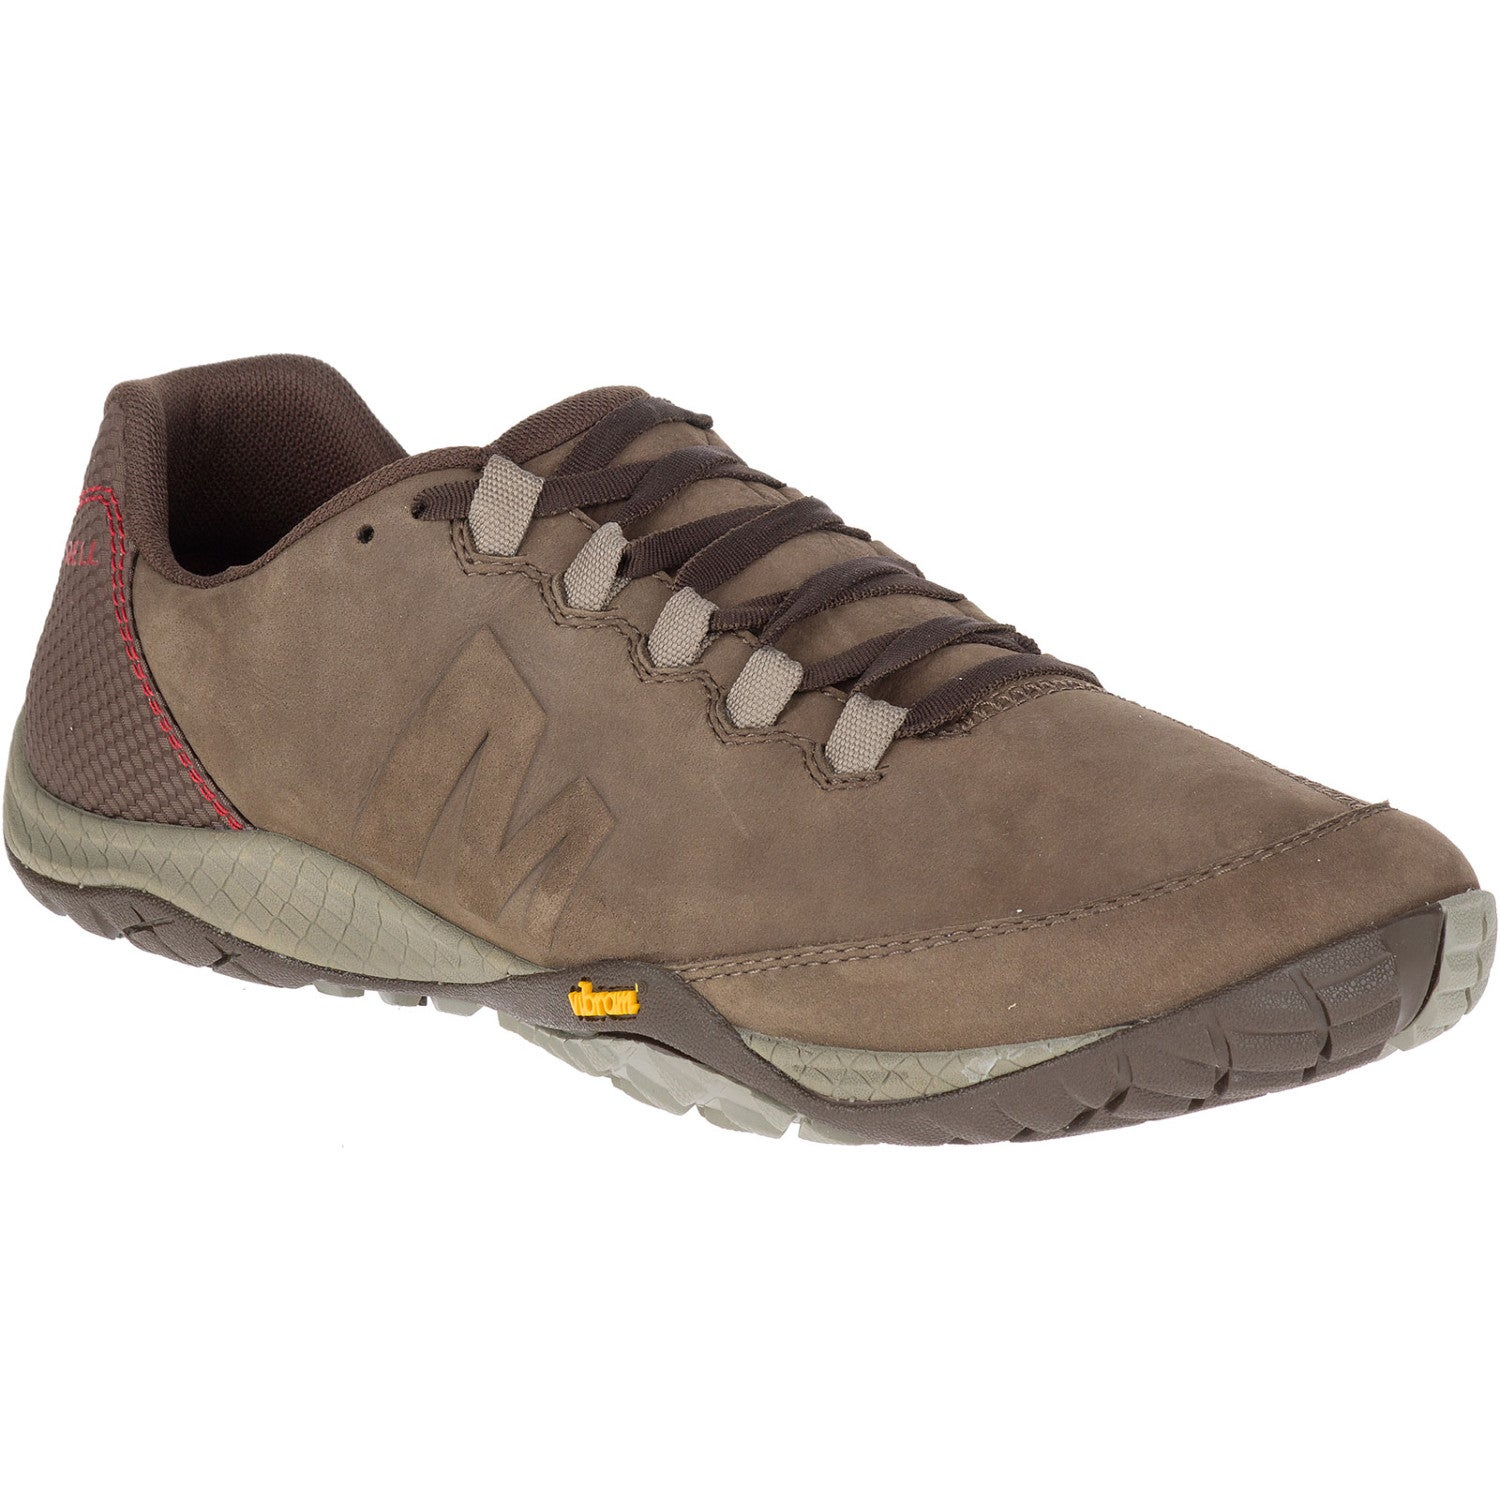 1b7c5eb1b19 Merrell Parkway Emboss Lace Shoes from Fitness Footwear